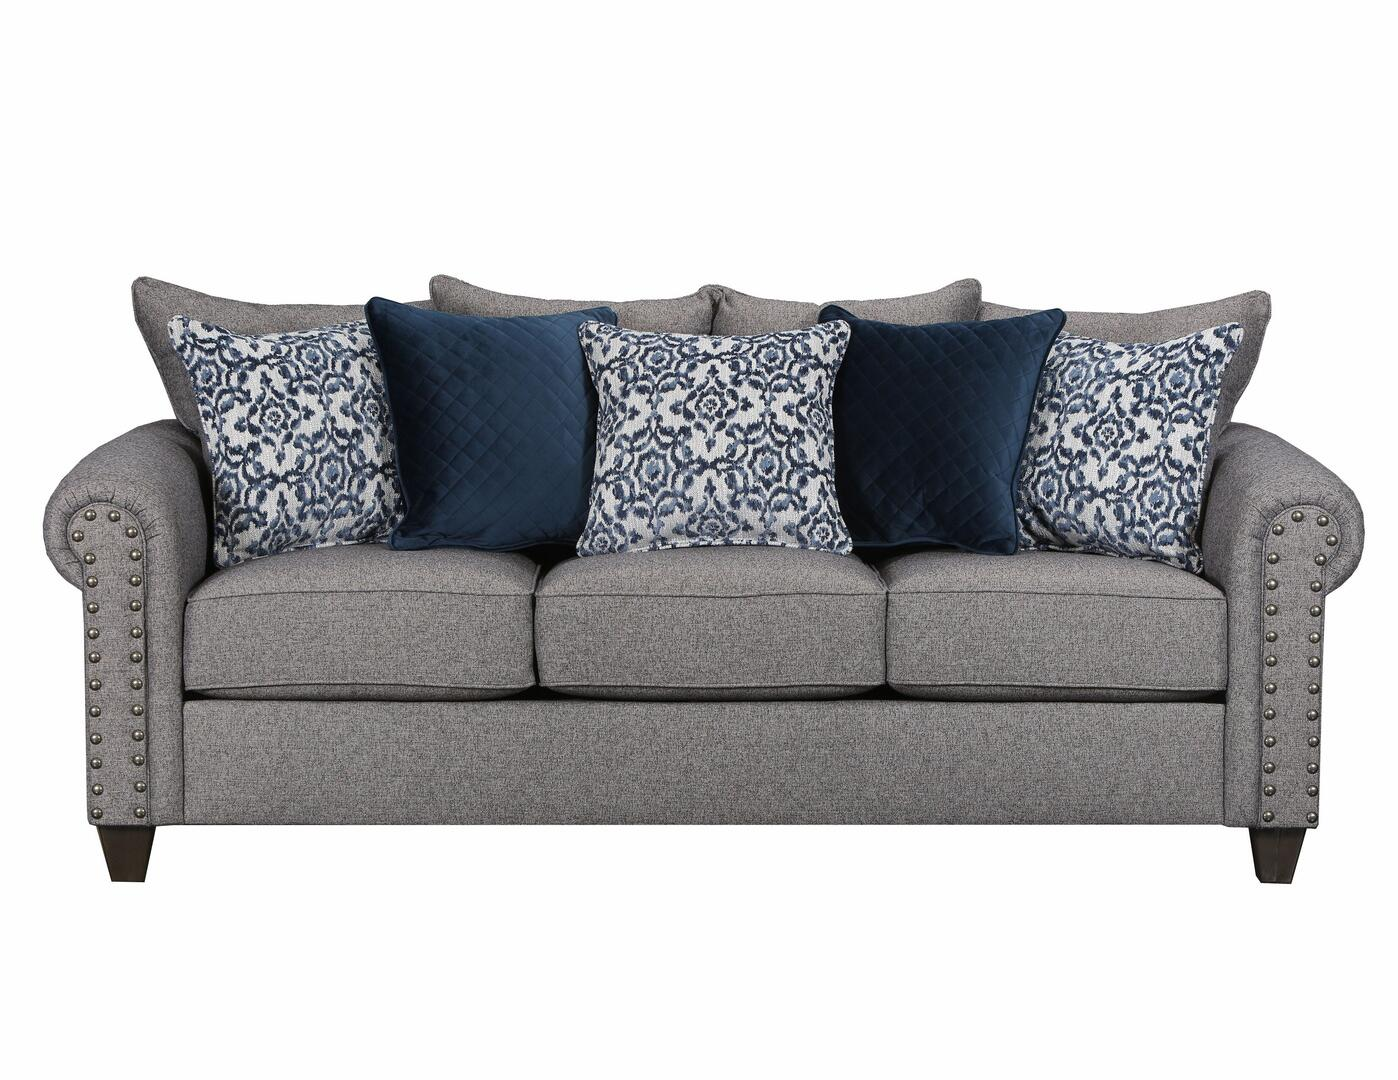 Simmons Upholstery Emma Sofa Bed